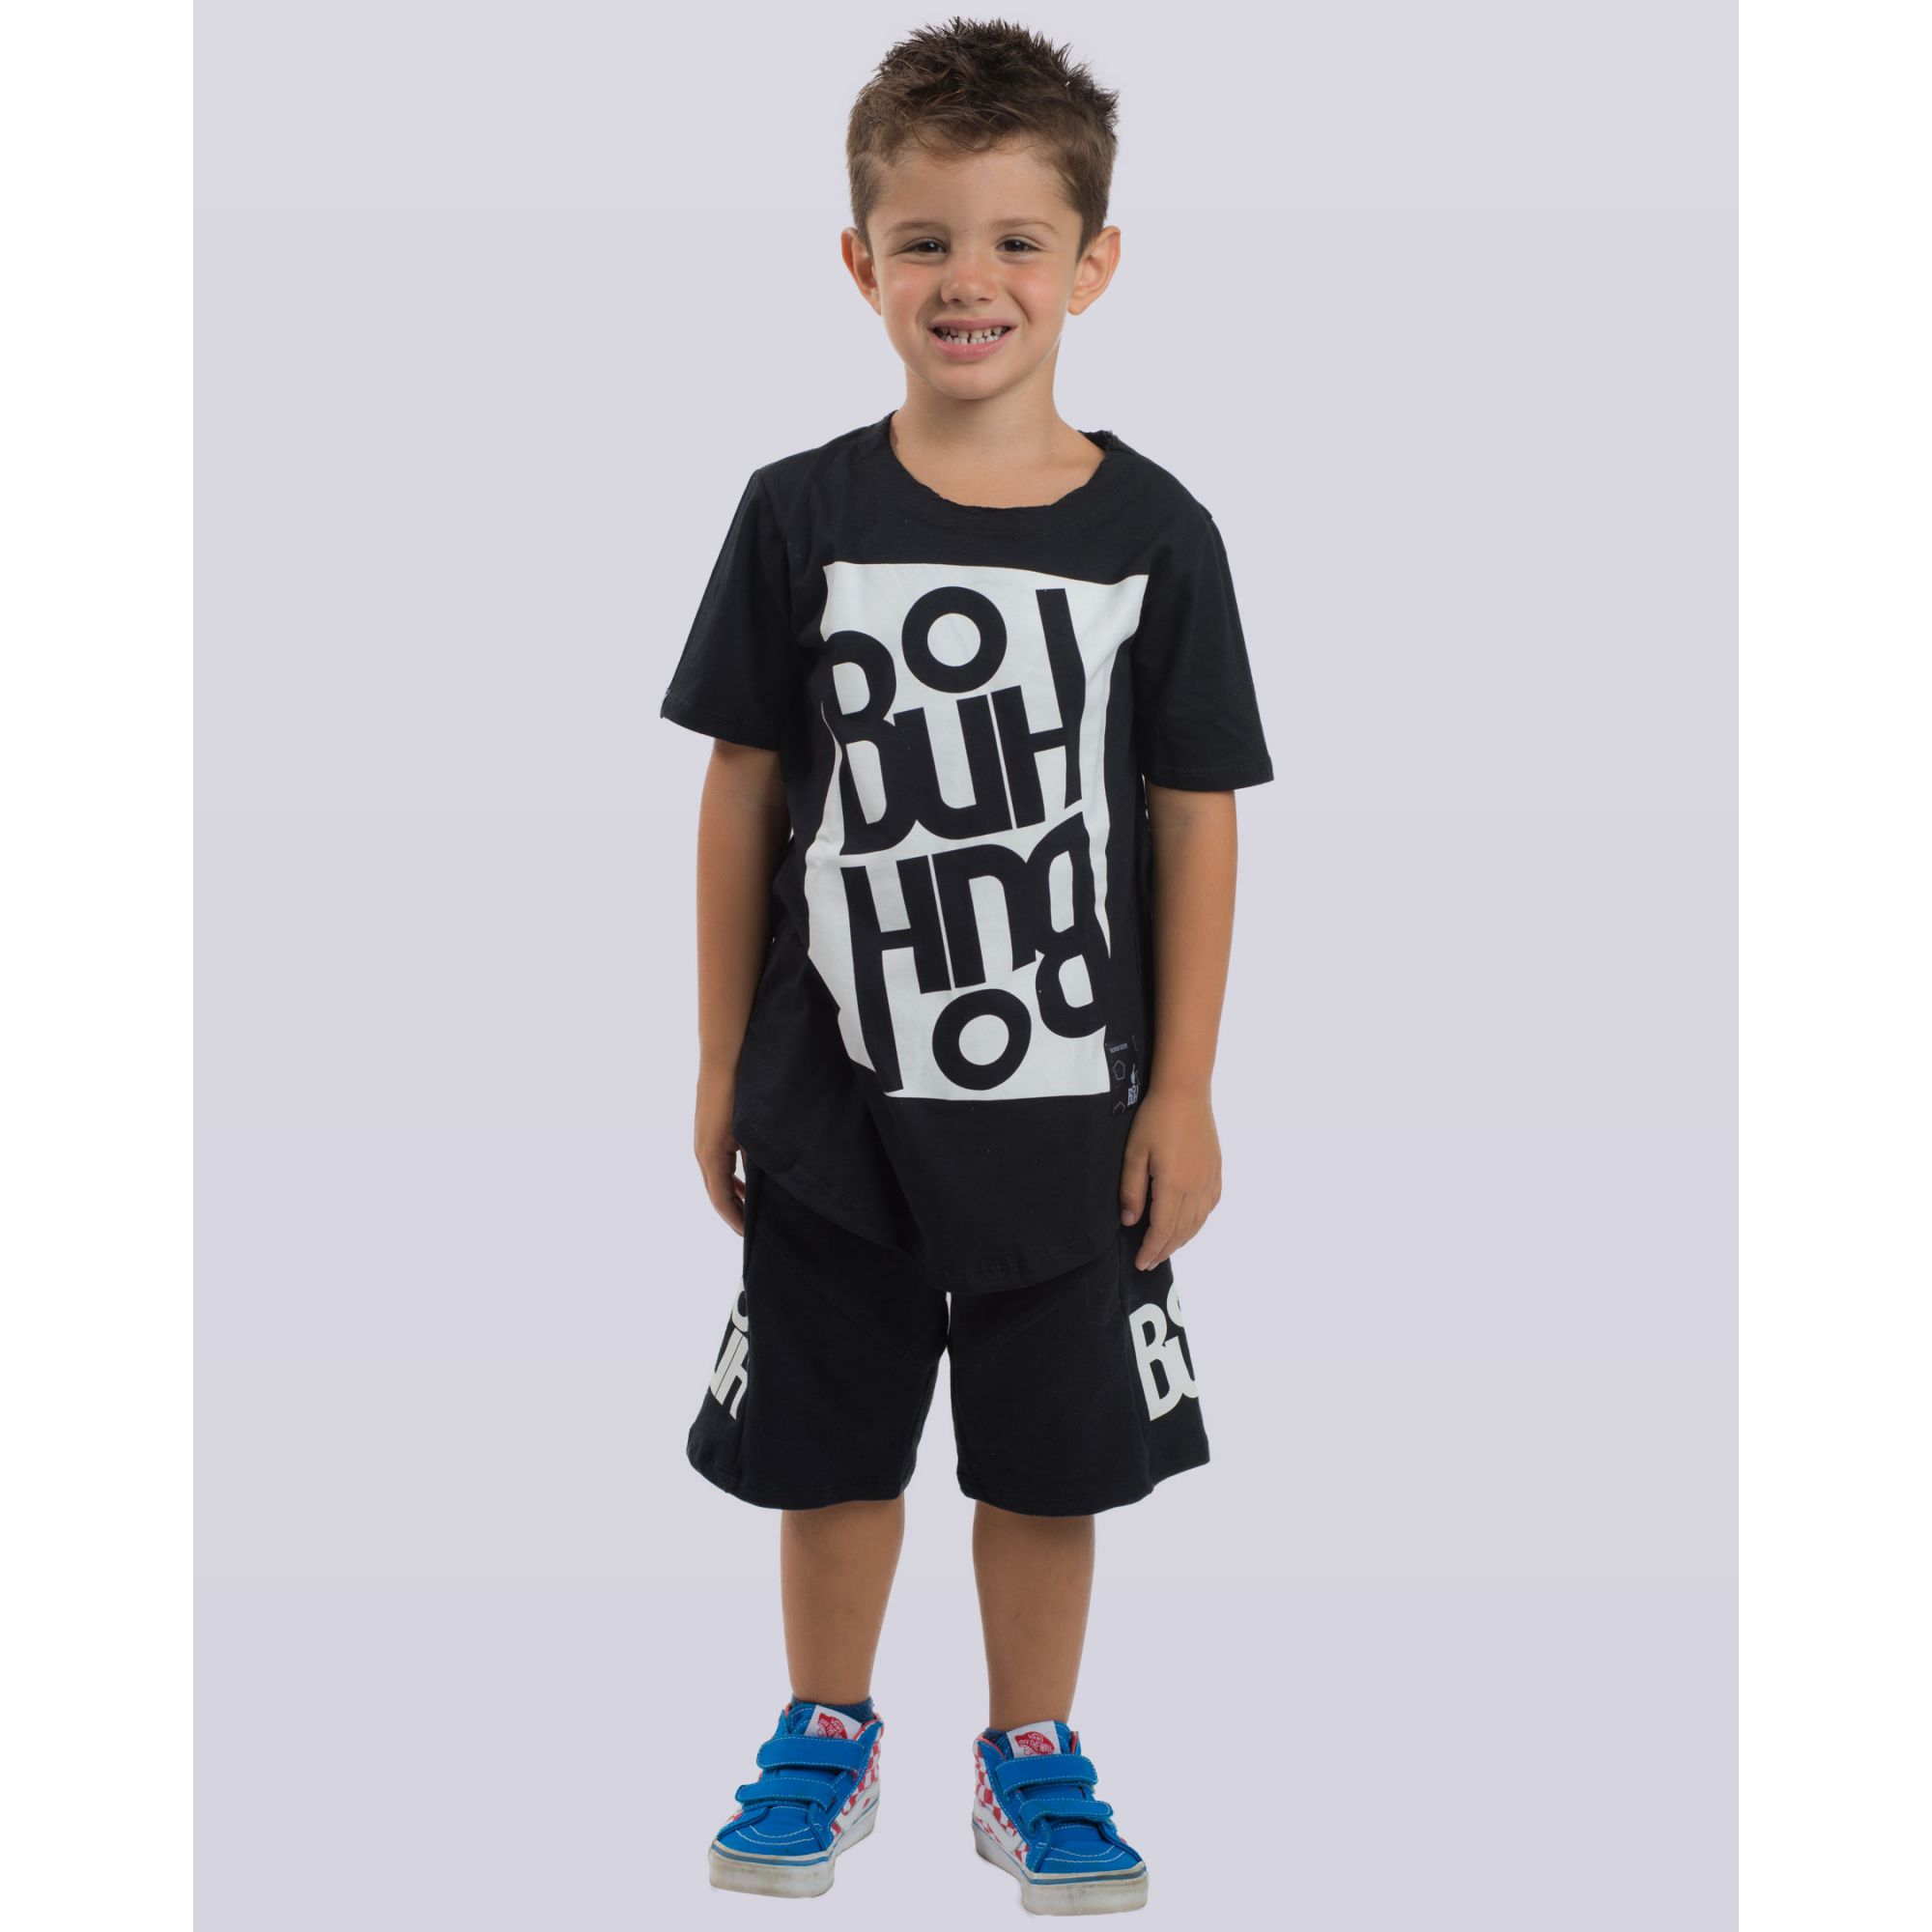 Camiseta Buh Kids Square II Black